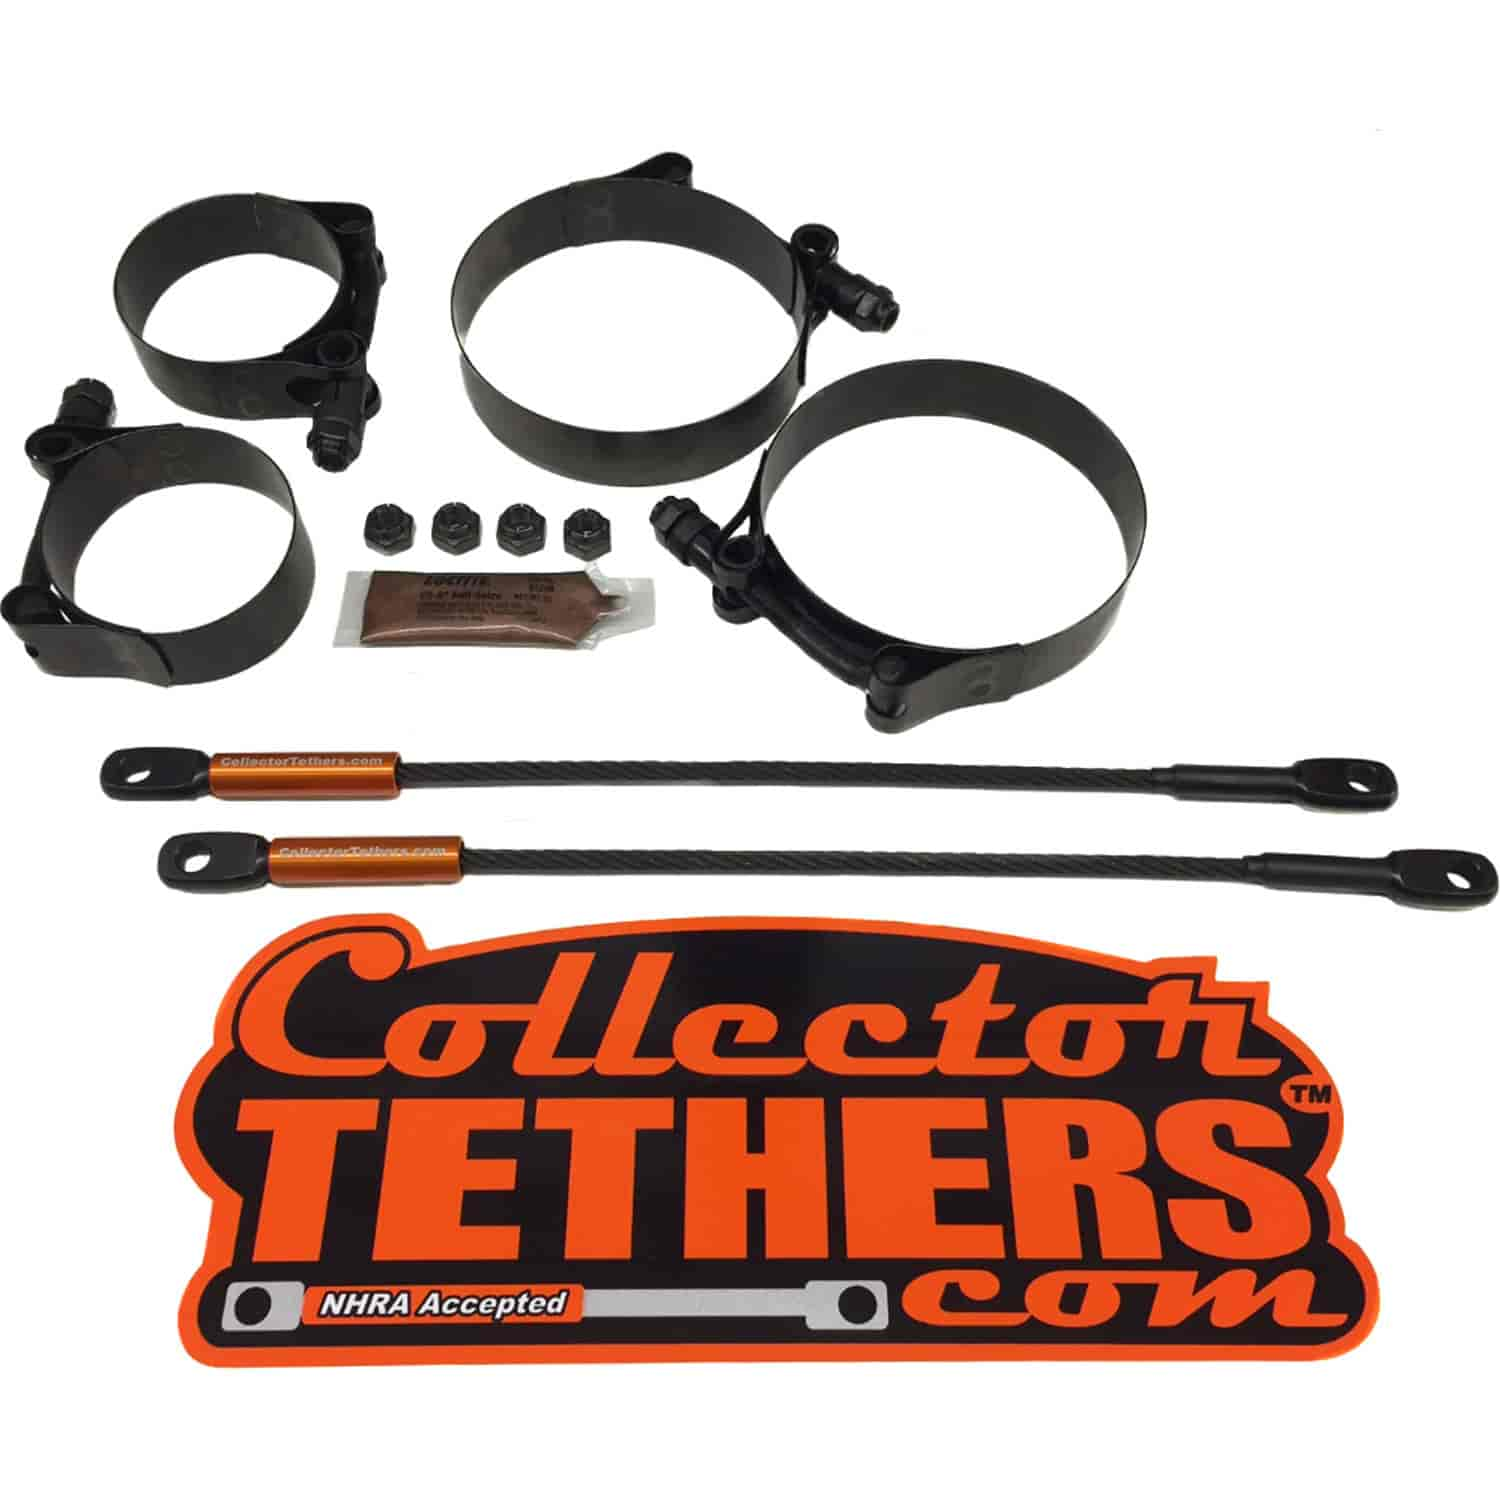 Collector Tethers 301523754500